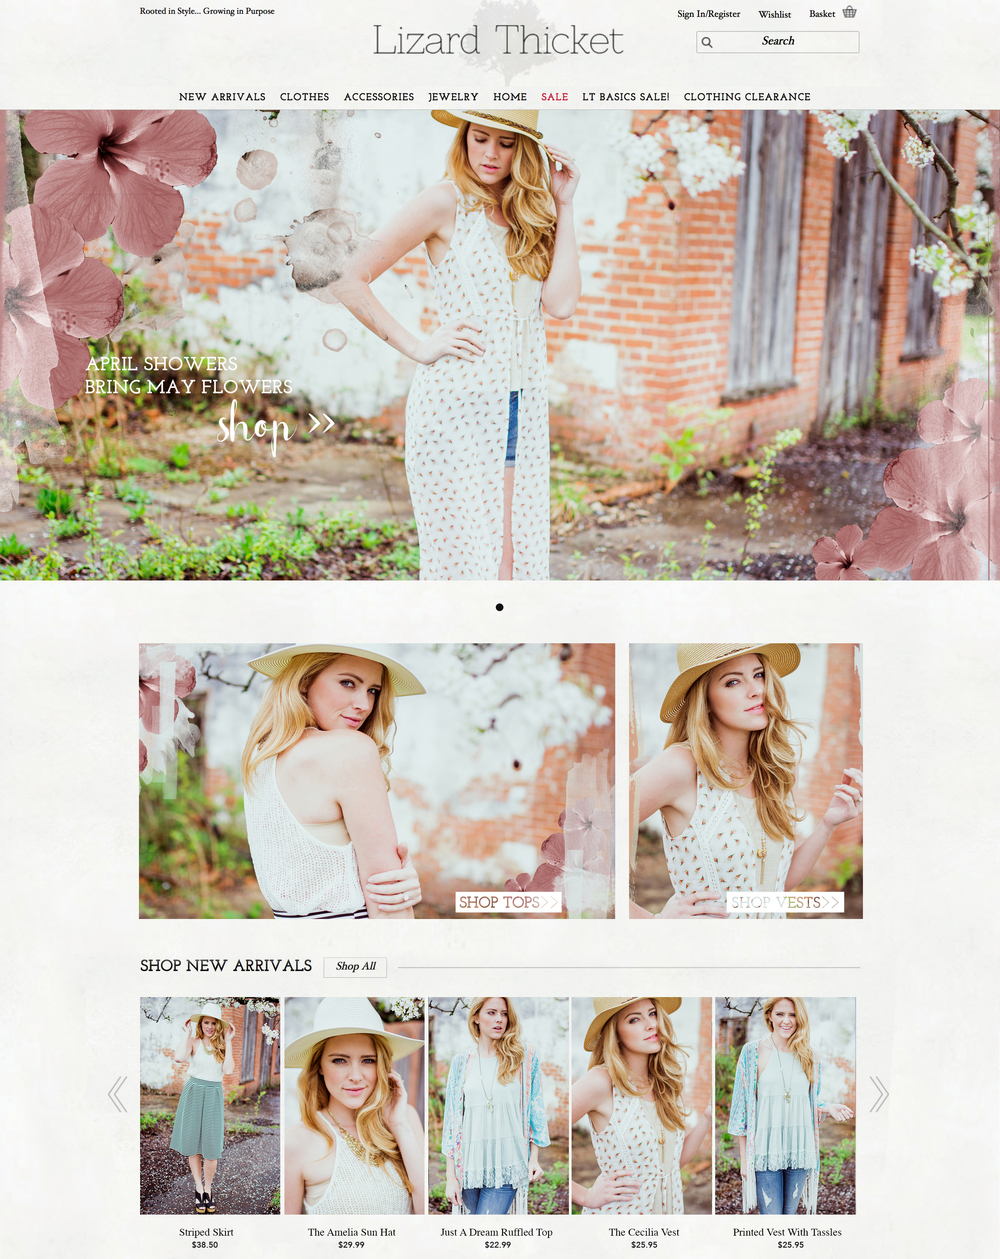 lizard-thicket-spring-haley-tetreault.jpg